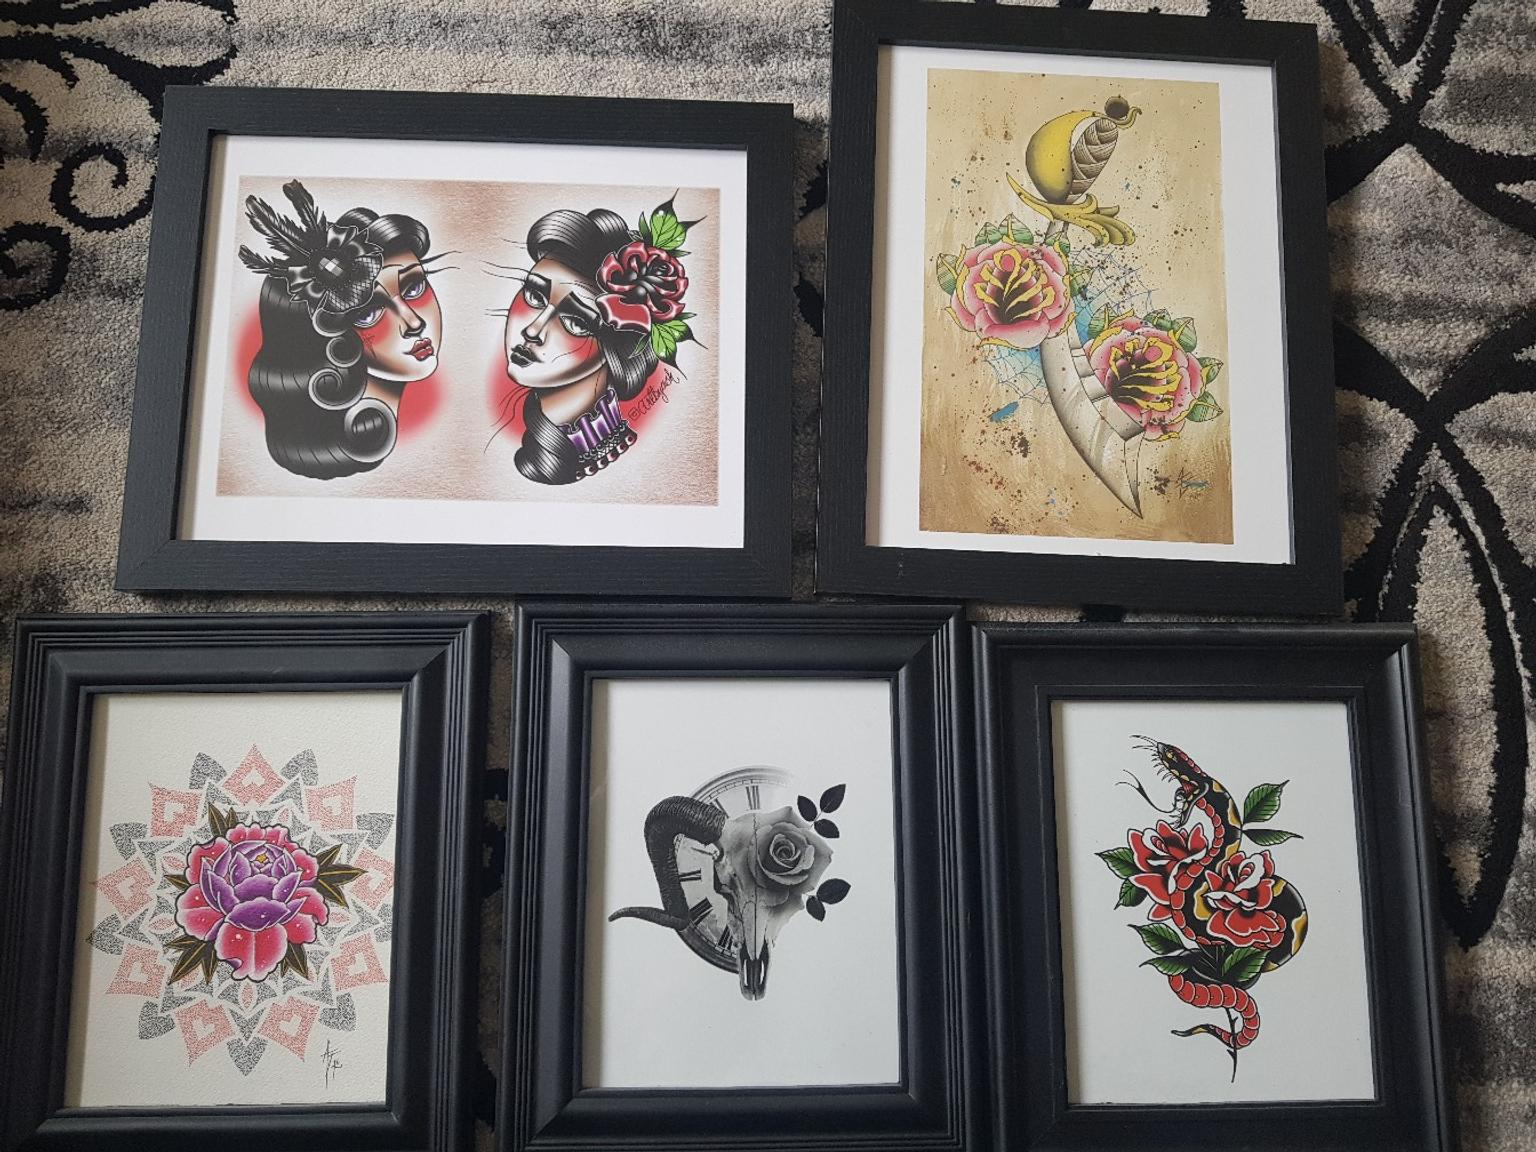 2bfa17a98ef9c framed tattoo art prints in W3 London Borough of Ealing for £10.00 for sale  - Shpock